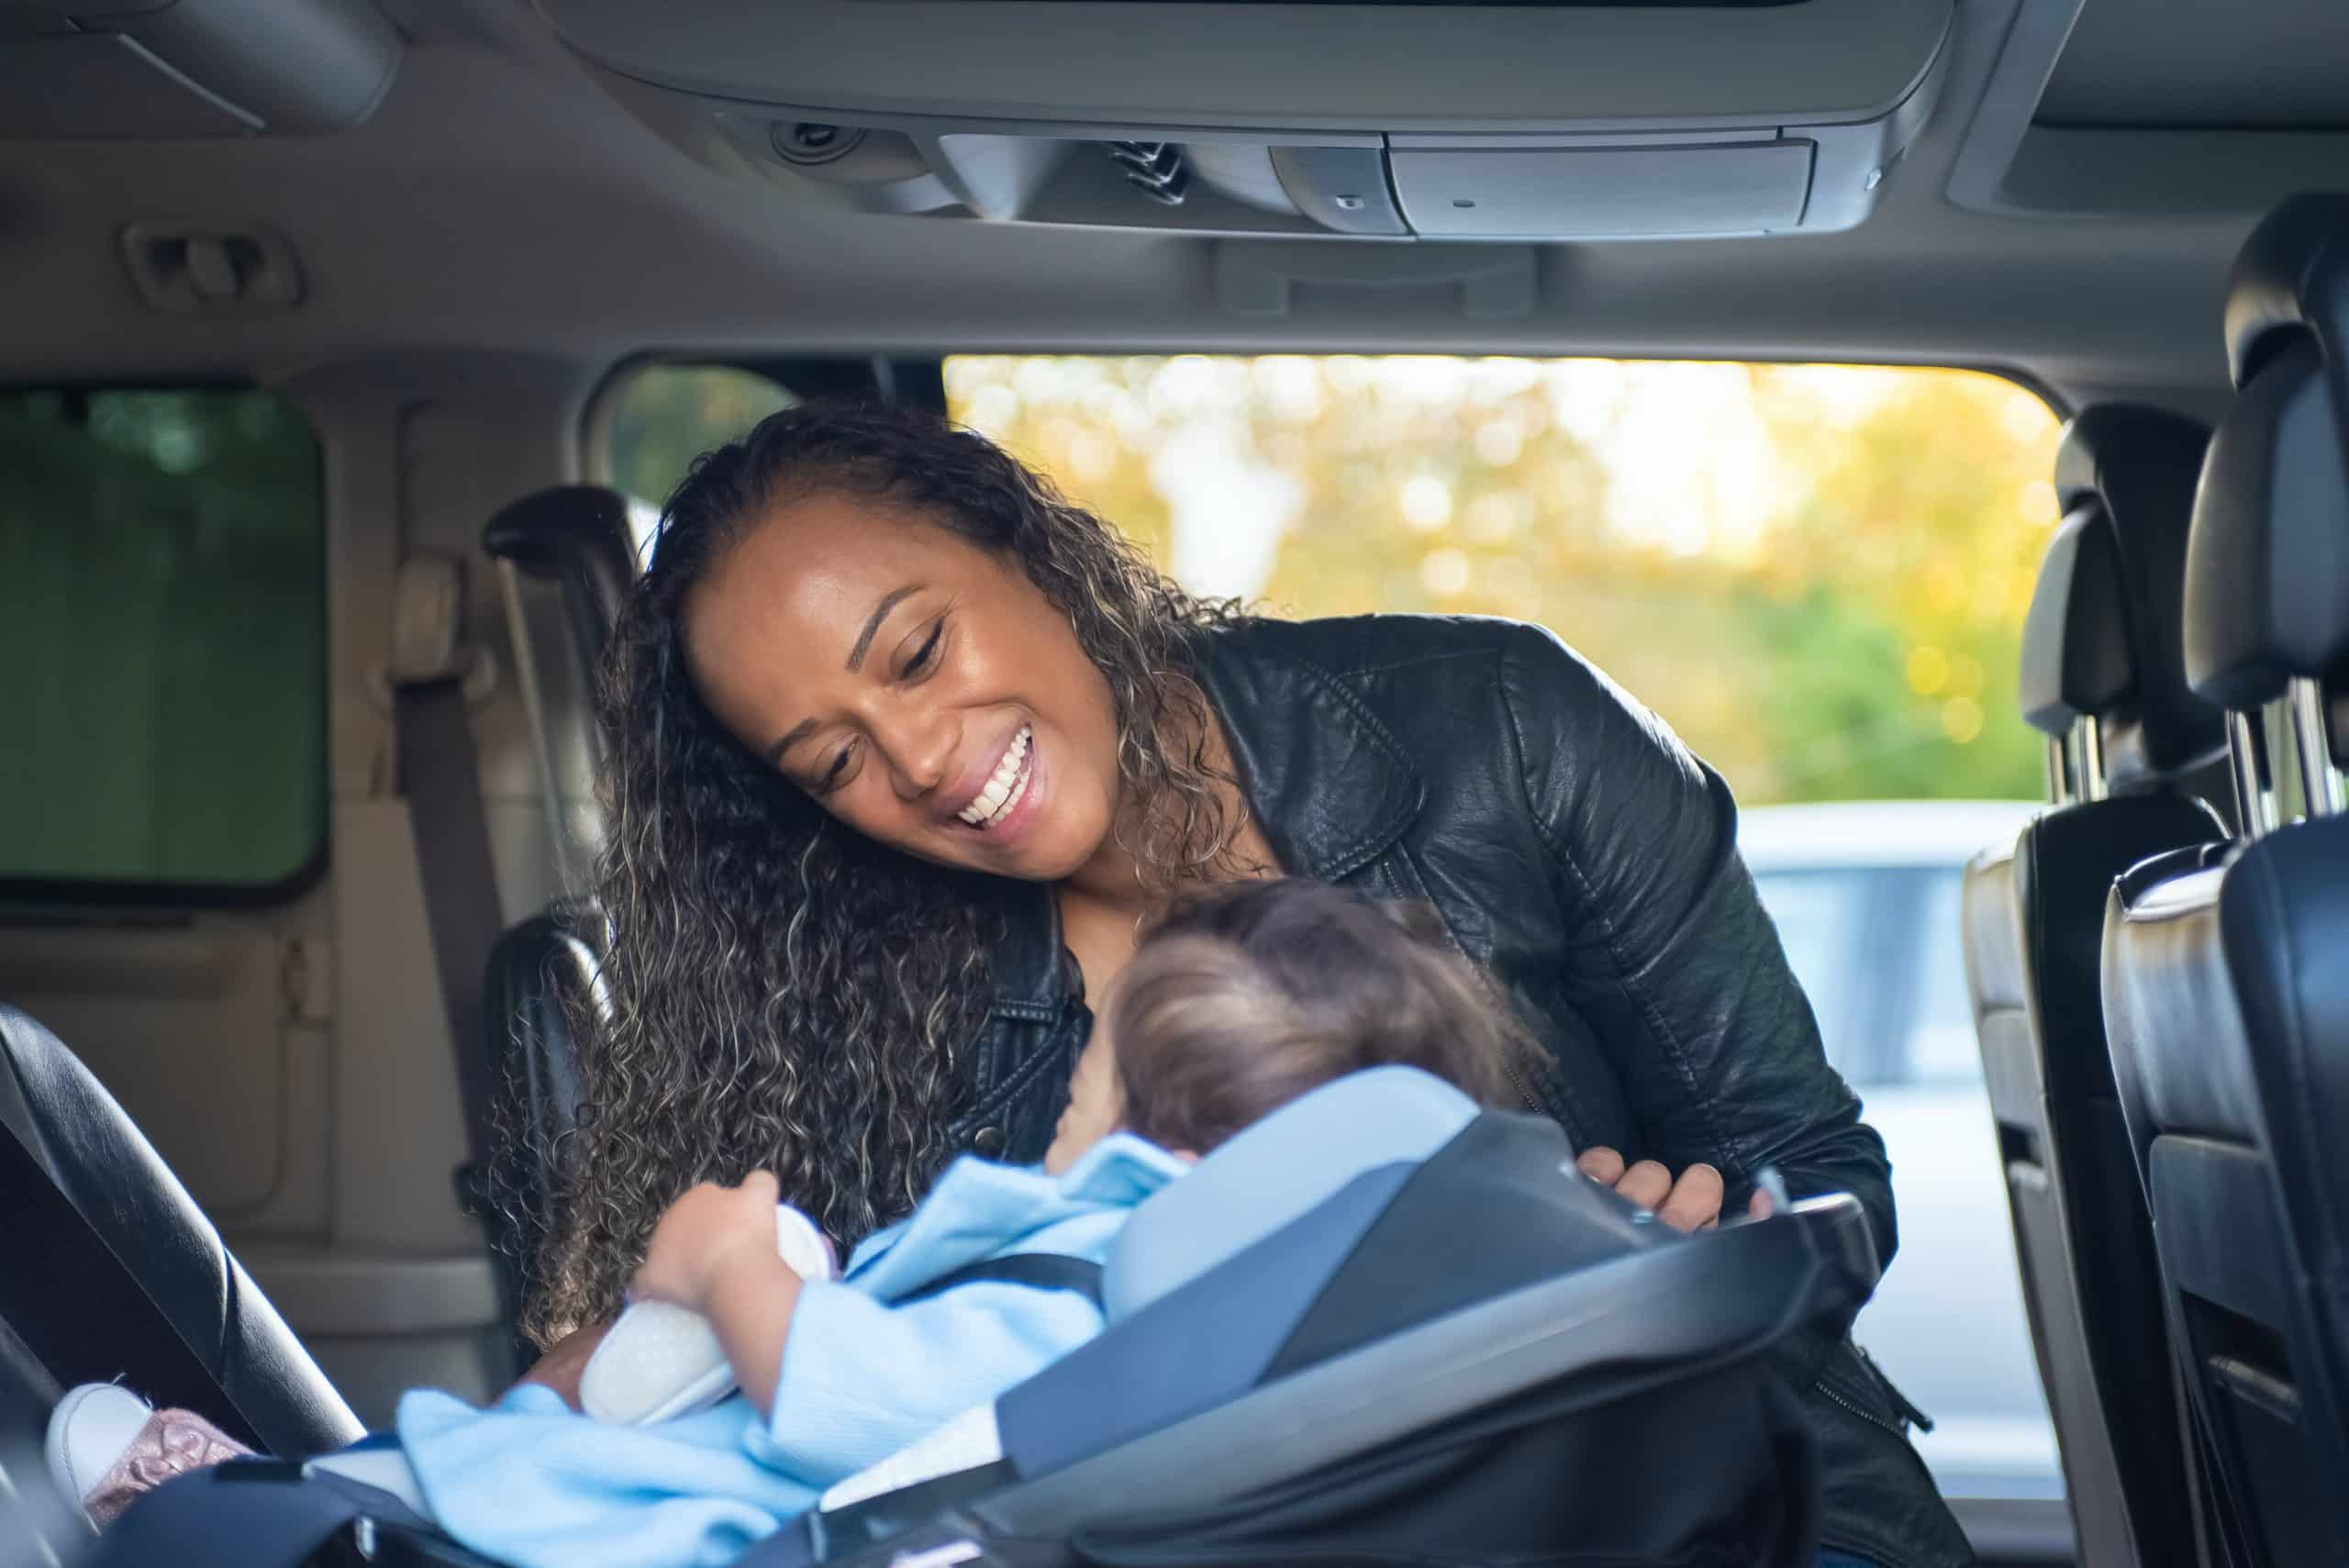 Mum and child in a car